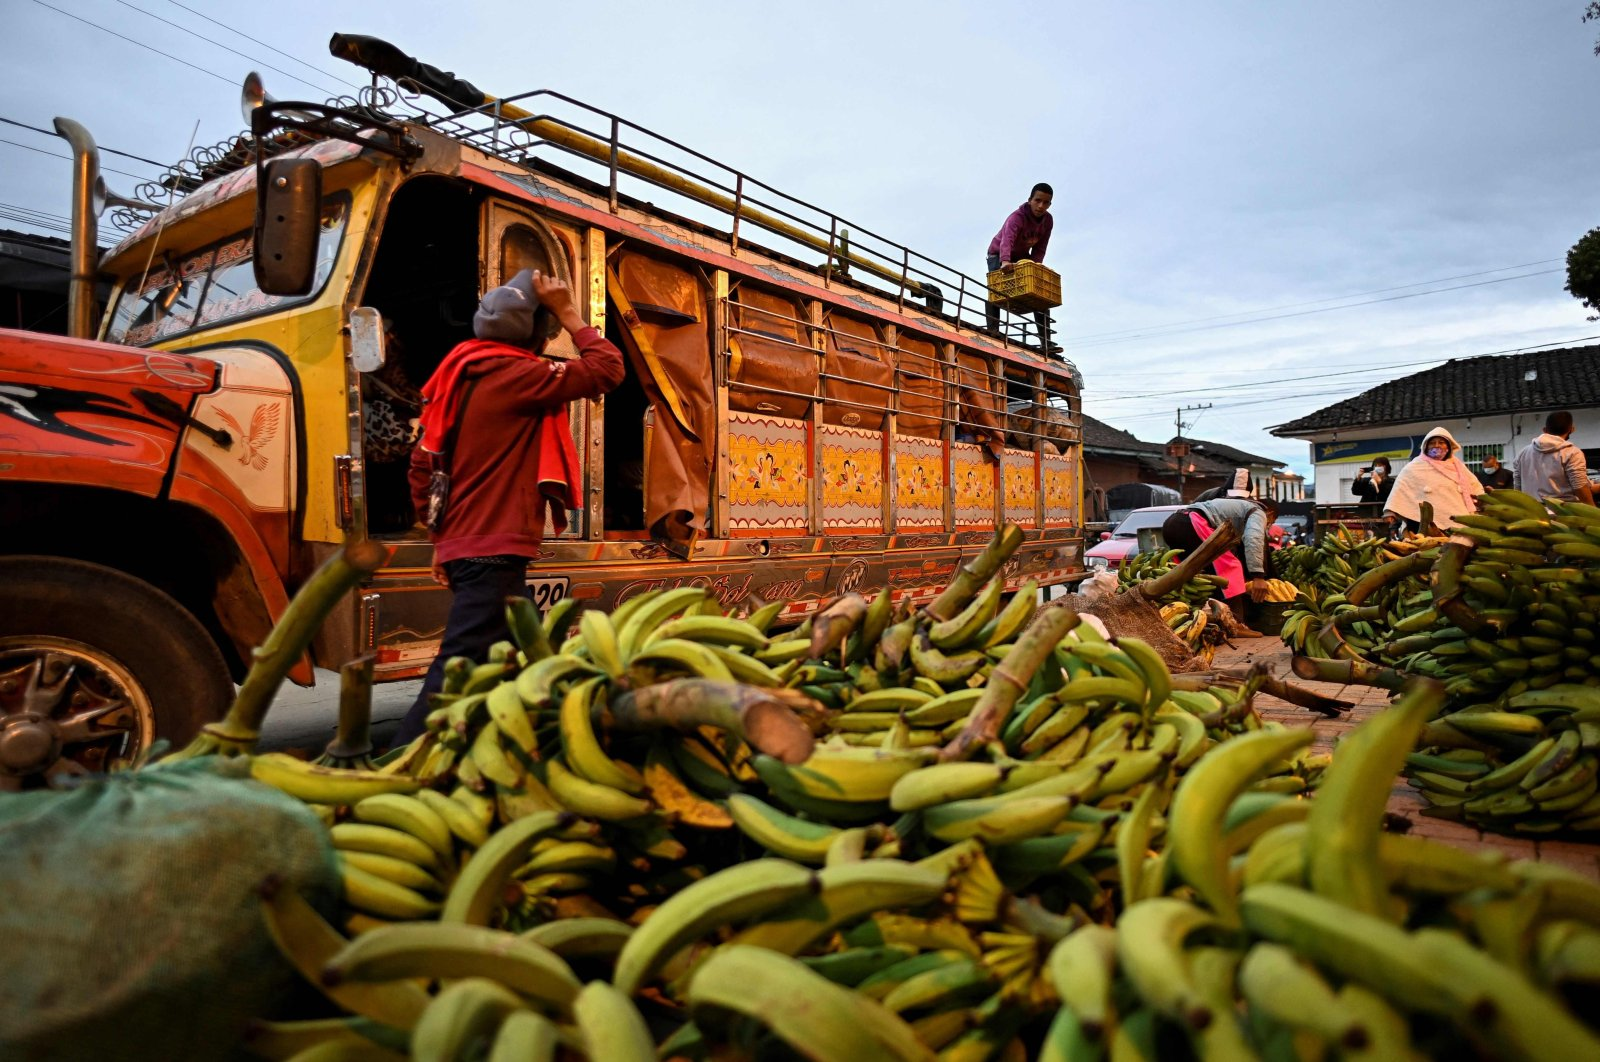 People unload fruits and vegetables from a transport vehicle in Silvia, Colombia, South America, March 9, 2021. (AFP Photo)